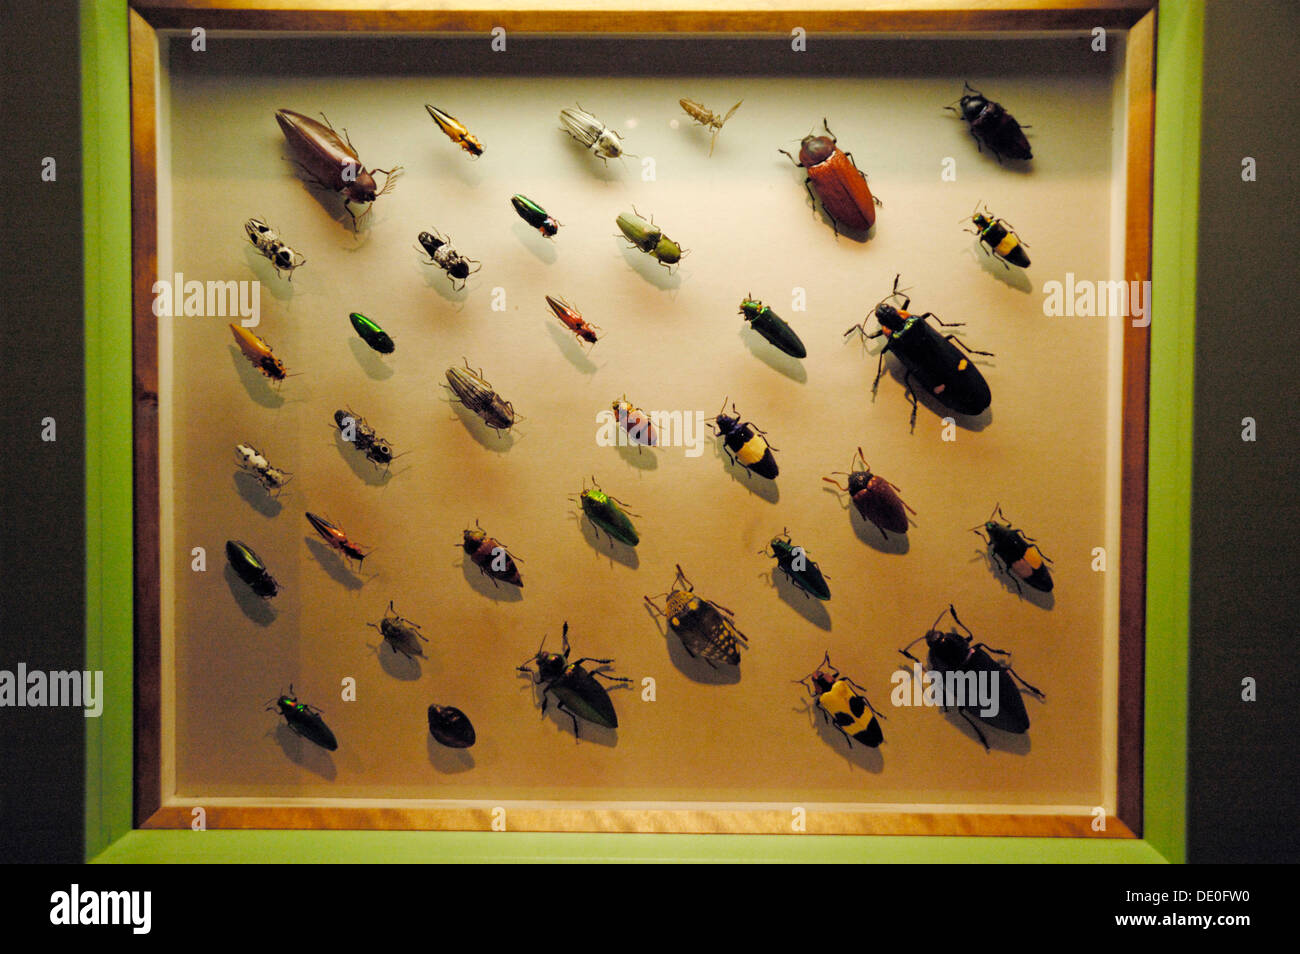 Various Jewel Beetles or Metallic Wood-boring Beetles (Buprestidae), Click Beetles (Elateridae) in a showcase, insect exhibition - Stock Image